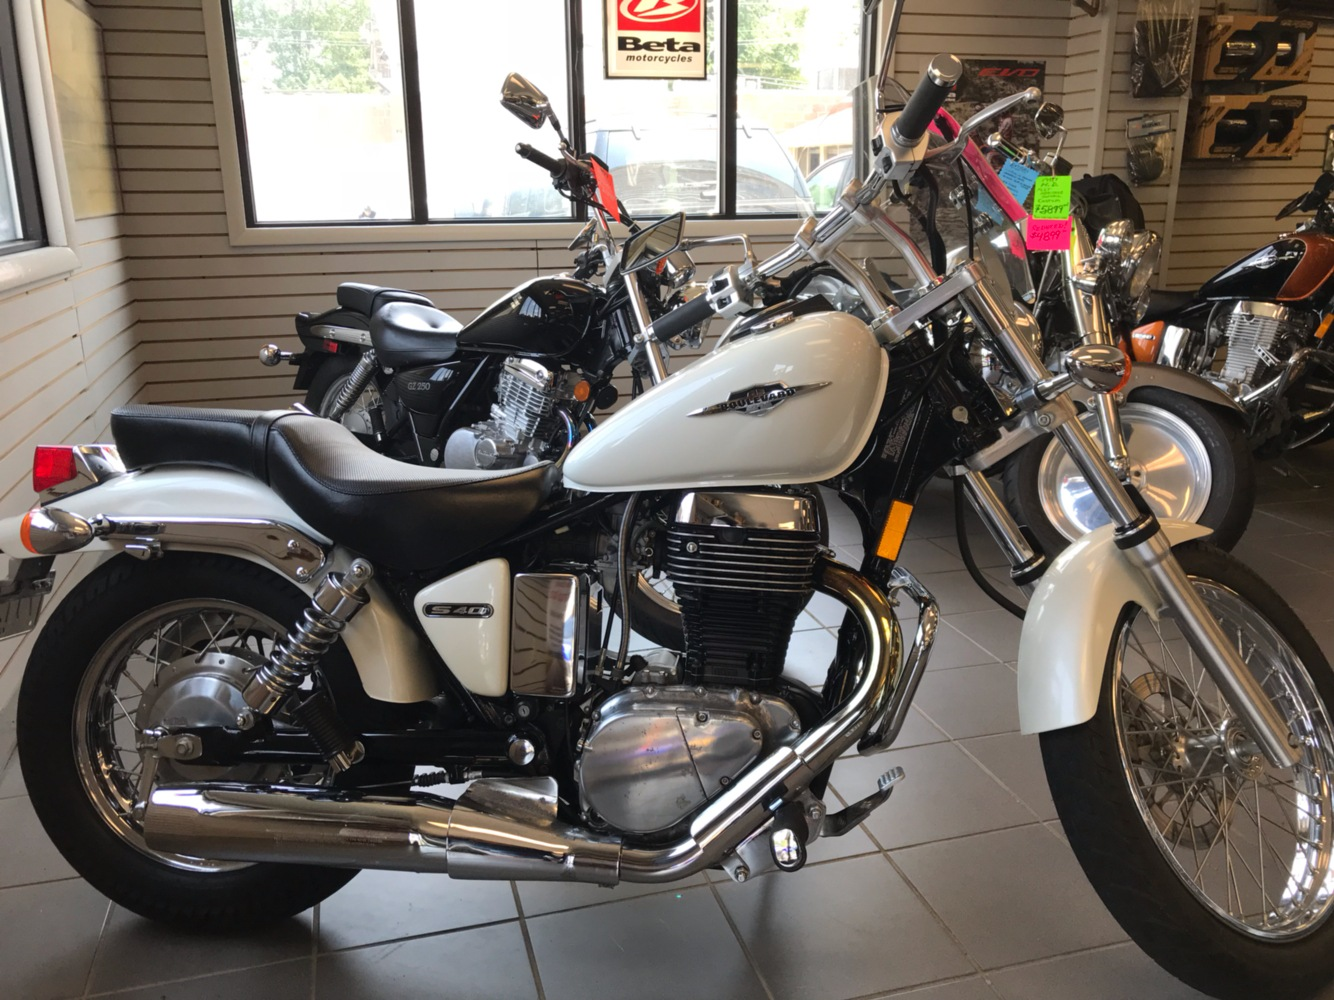 2007 Suzuki Boulevard S40 in Trevose, Pennsylvania - Photo 1